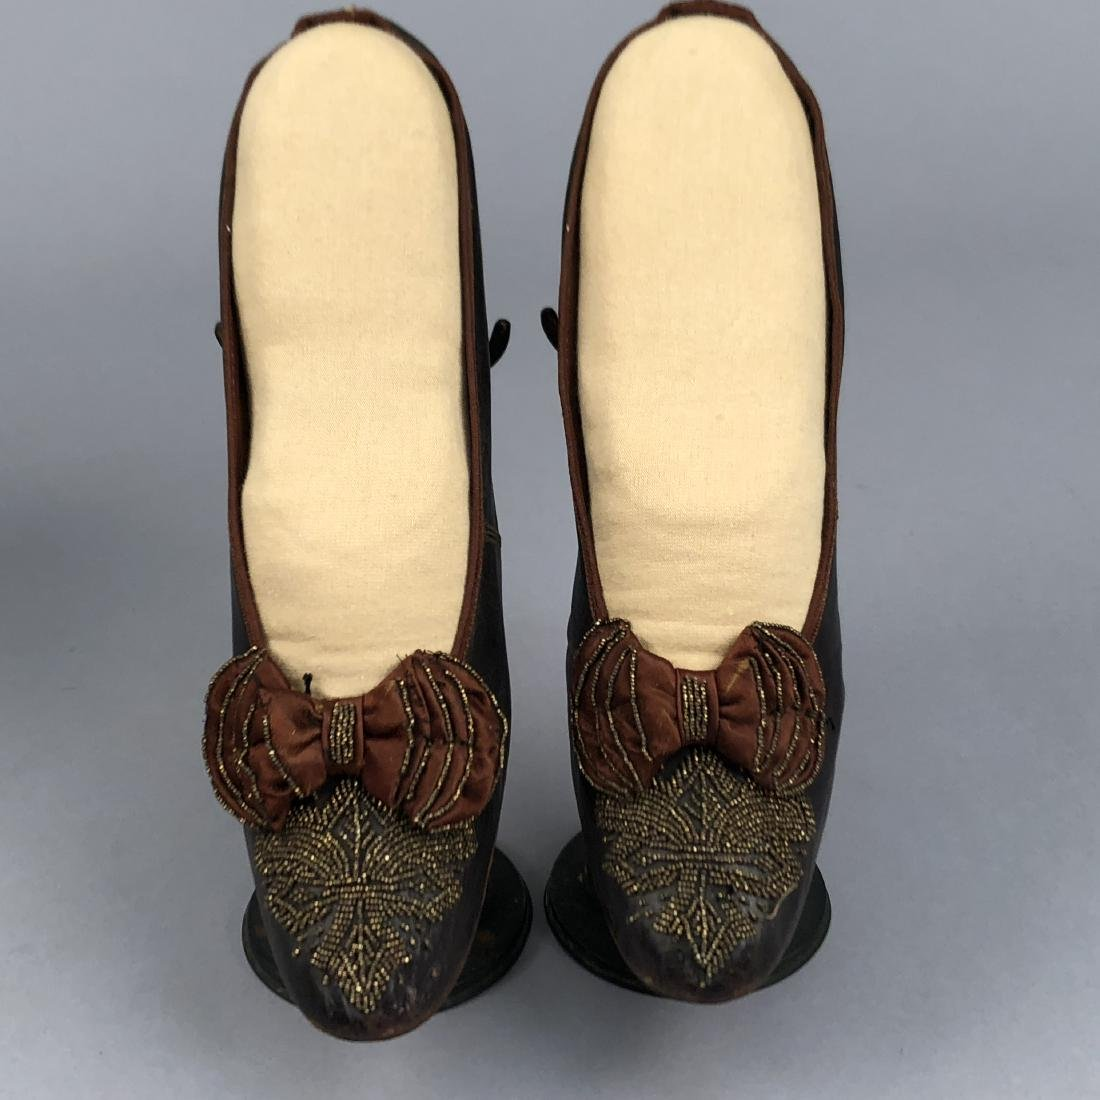 TWO PAIR LADIES' SHOES with LOUIS HEEL, 1870s - 2